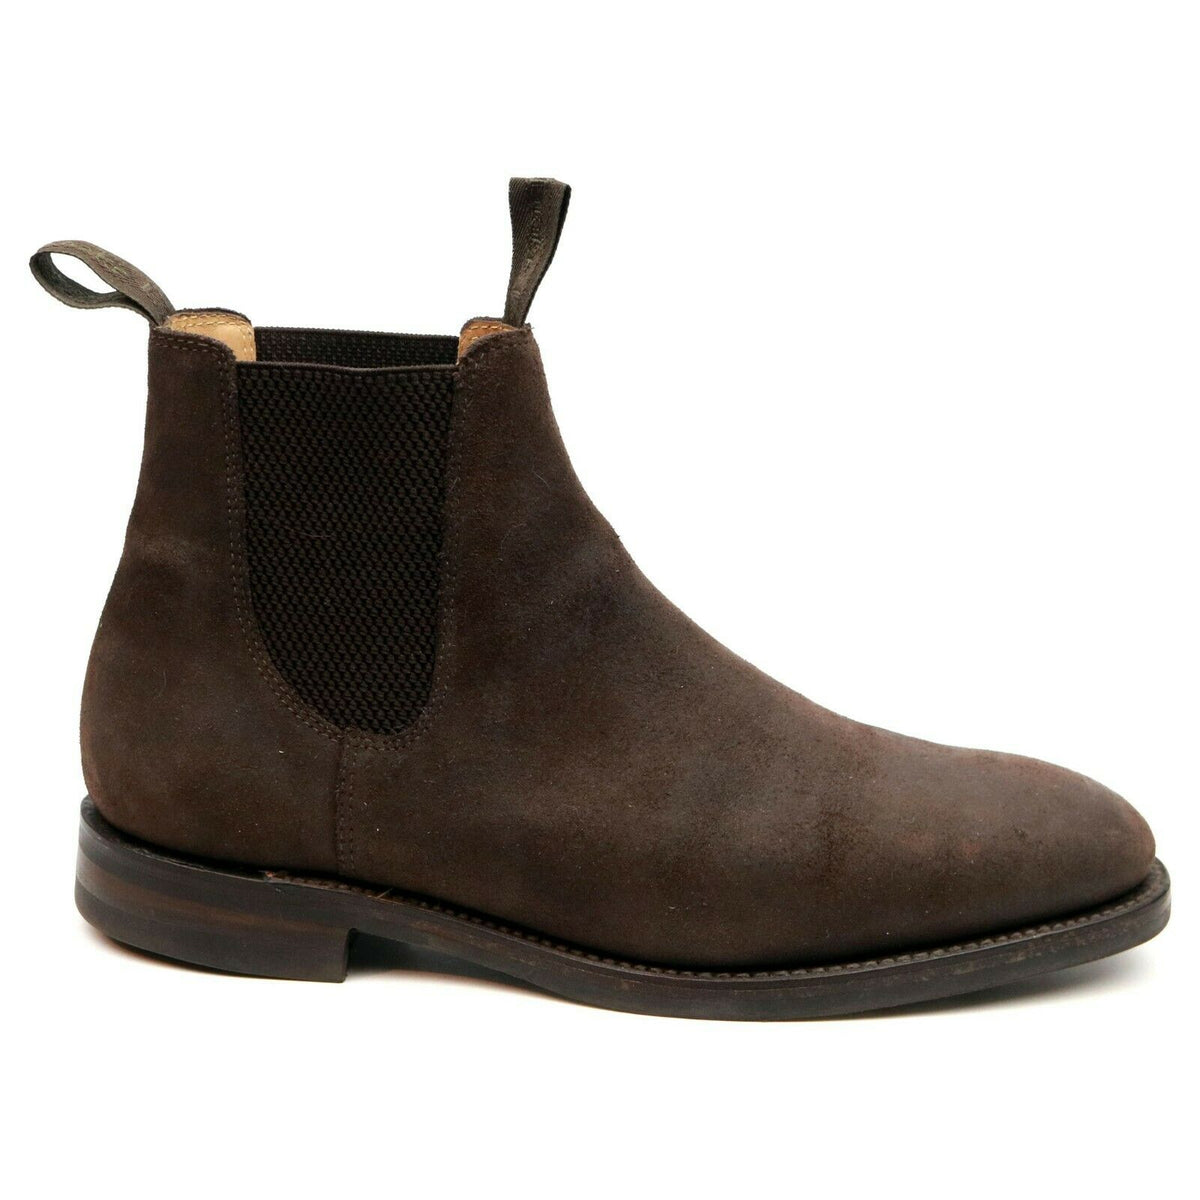 Loake 1880 'Chatsworth' Brown Rough Out Suede Chelsea Boots UK 8 G